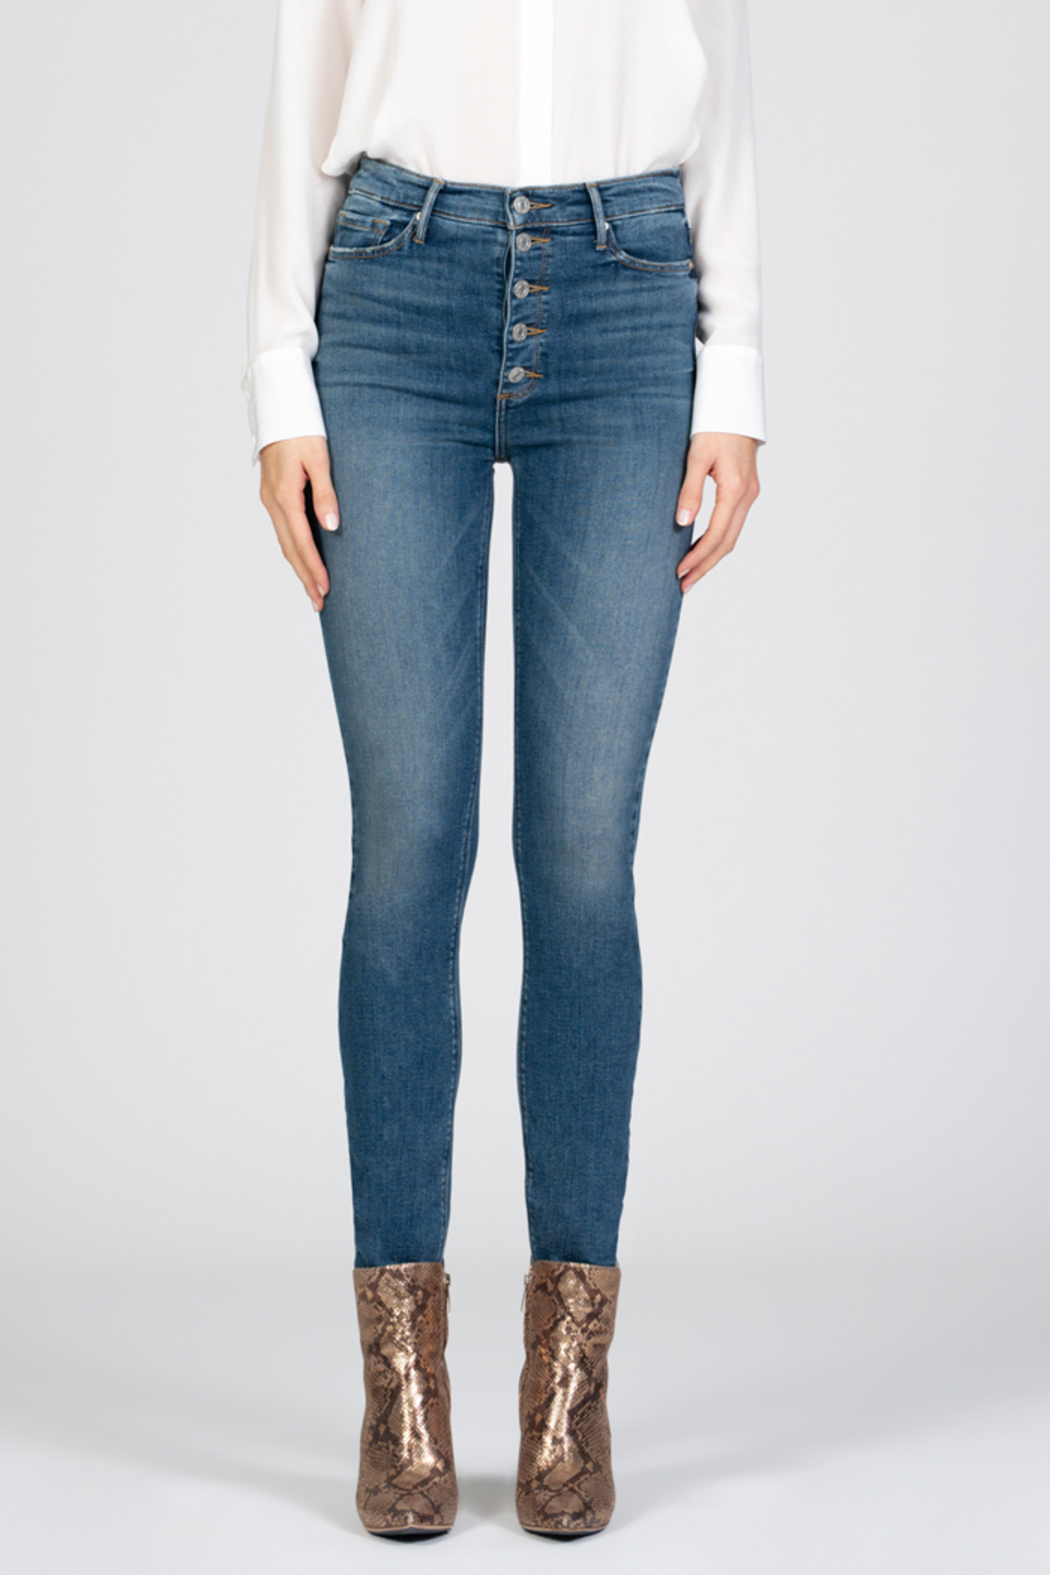 Black Orchid Denim Black Orchid Christie Buttonfly High Rise Skinny Jean - Front Full Image